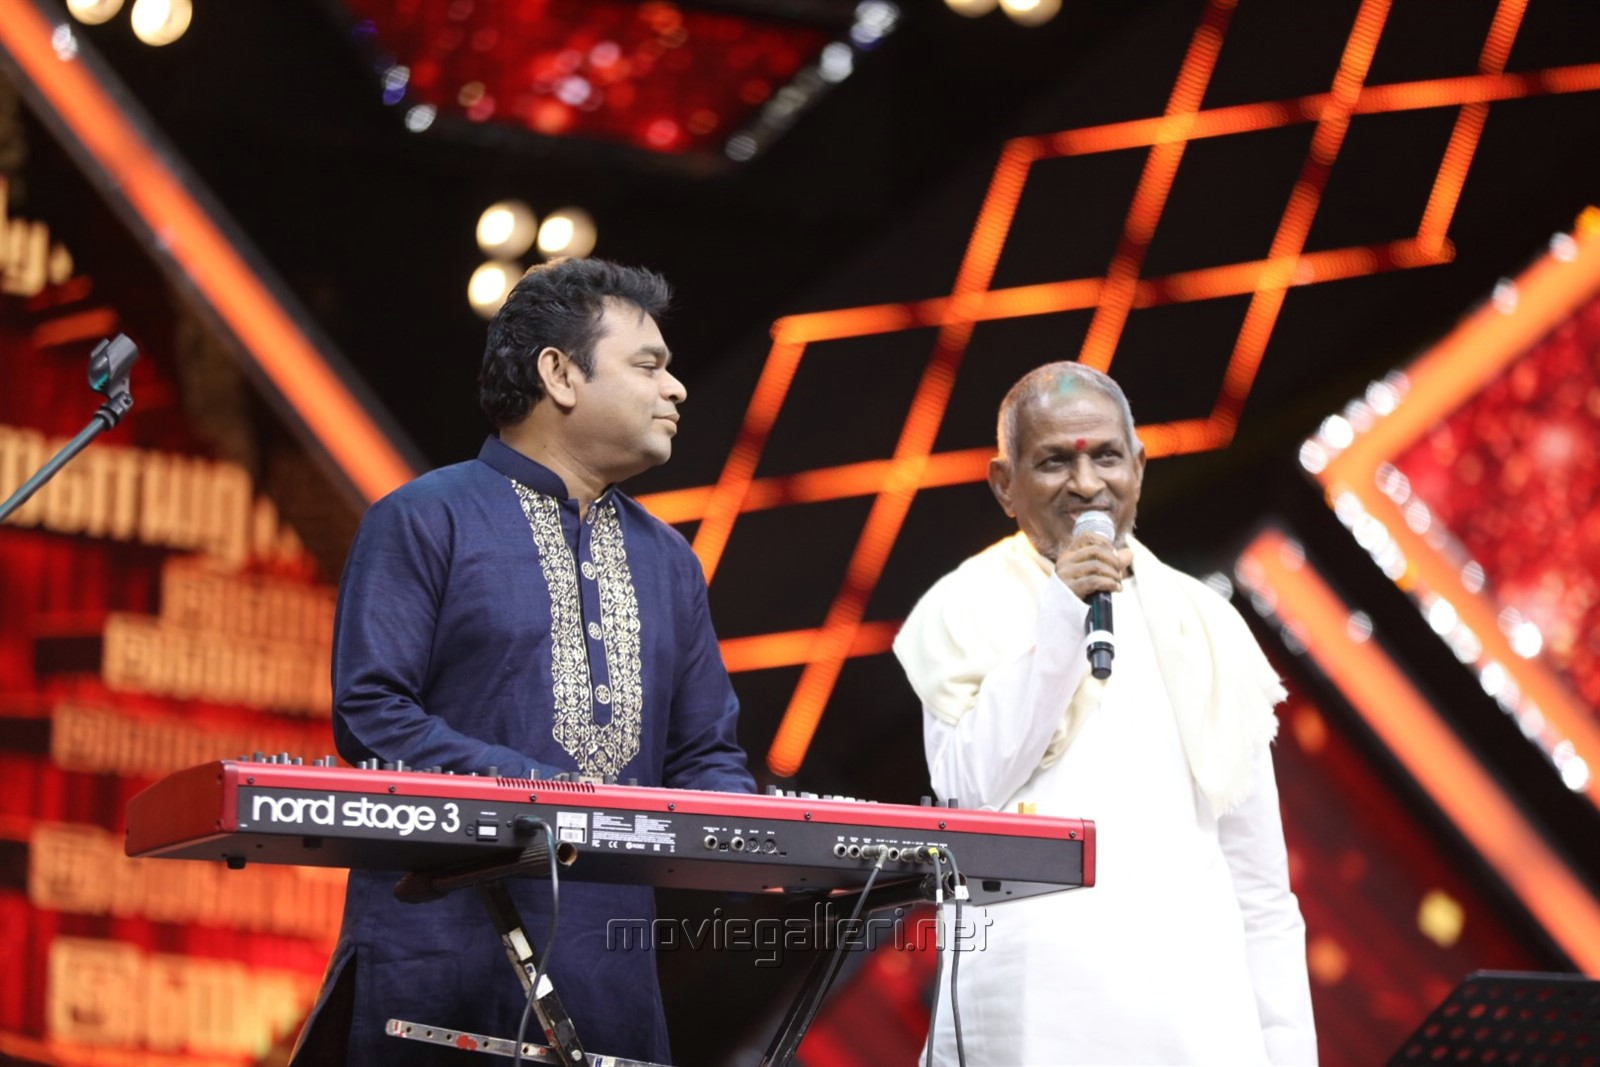 AR Rahman's Musical Piece & Ilayaraja's Emotional Joyful Tears @ Ilaiyaraaja 75